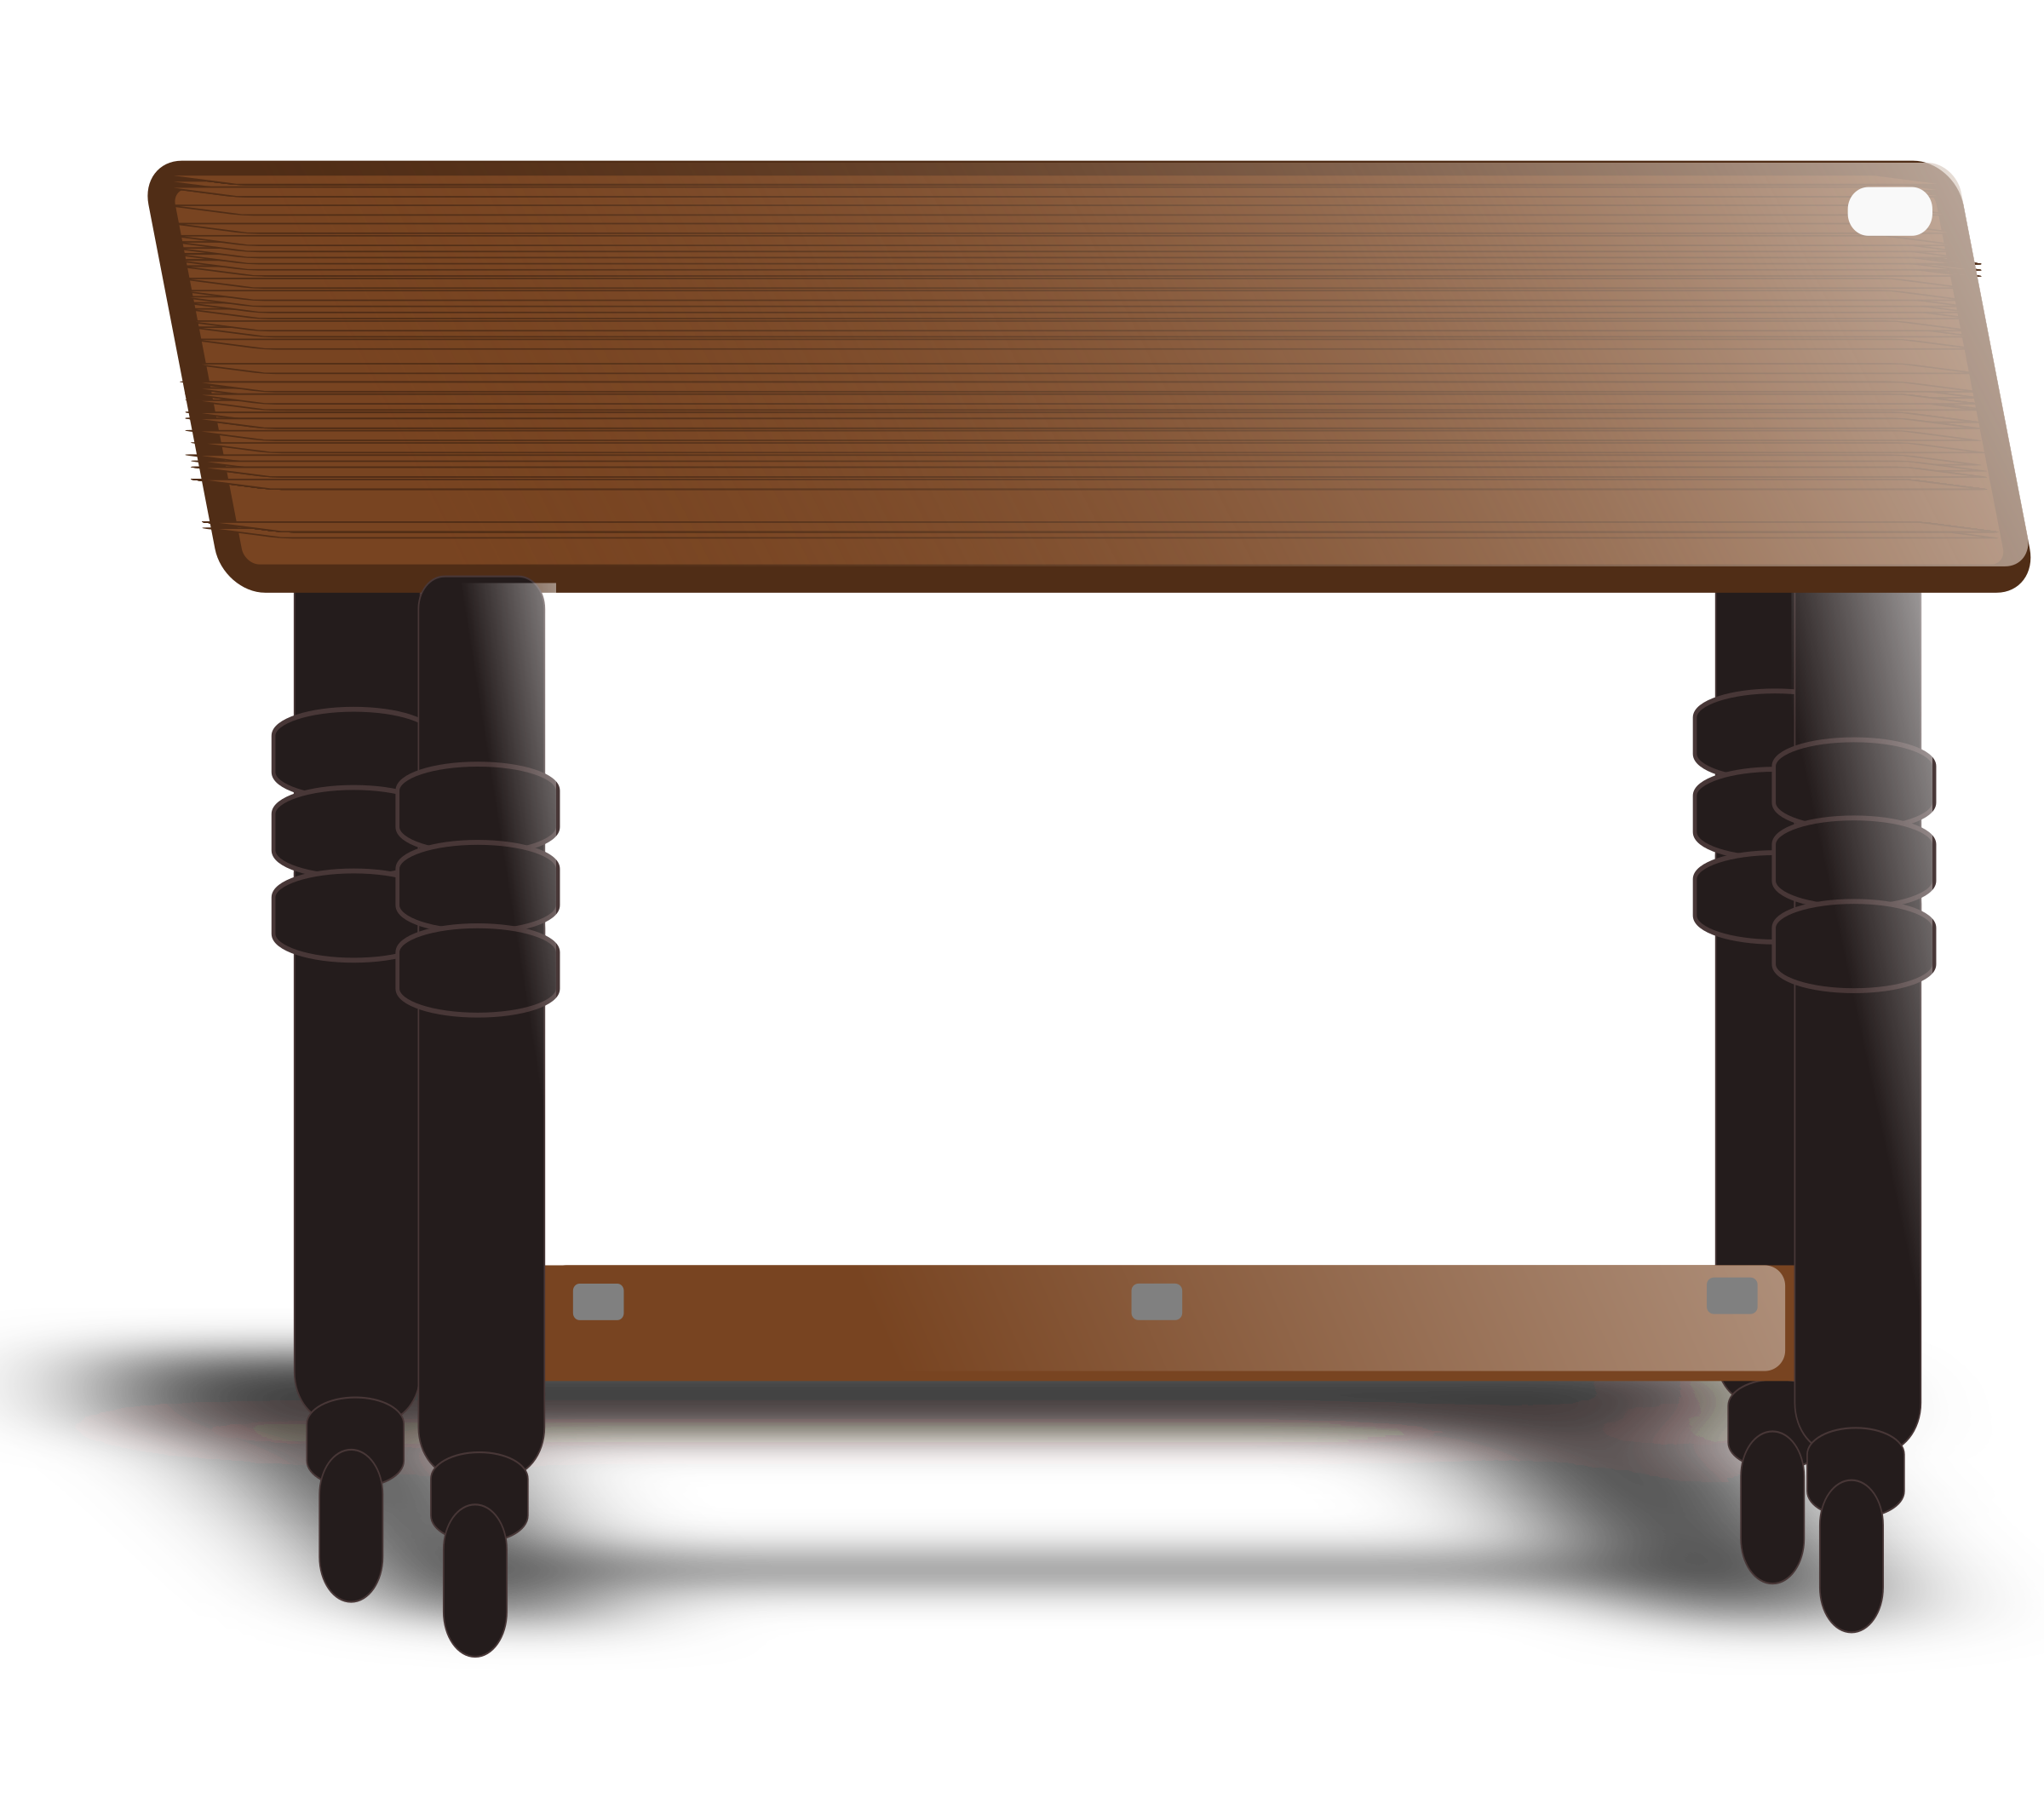 Teak Top Table by lpr577